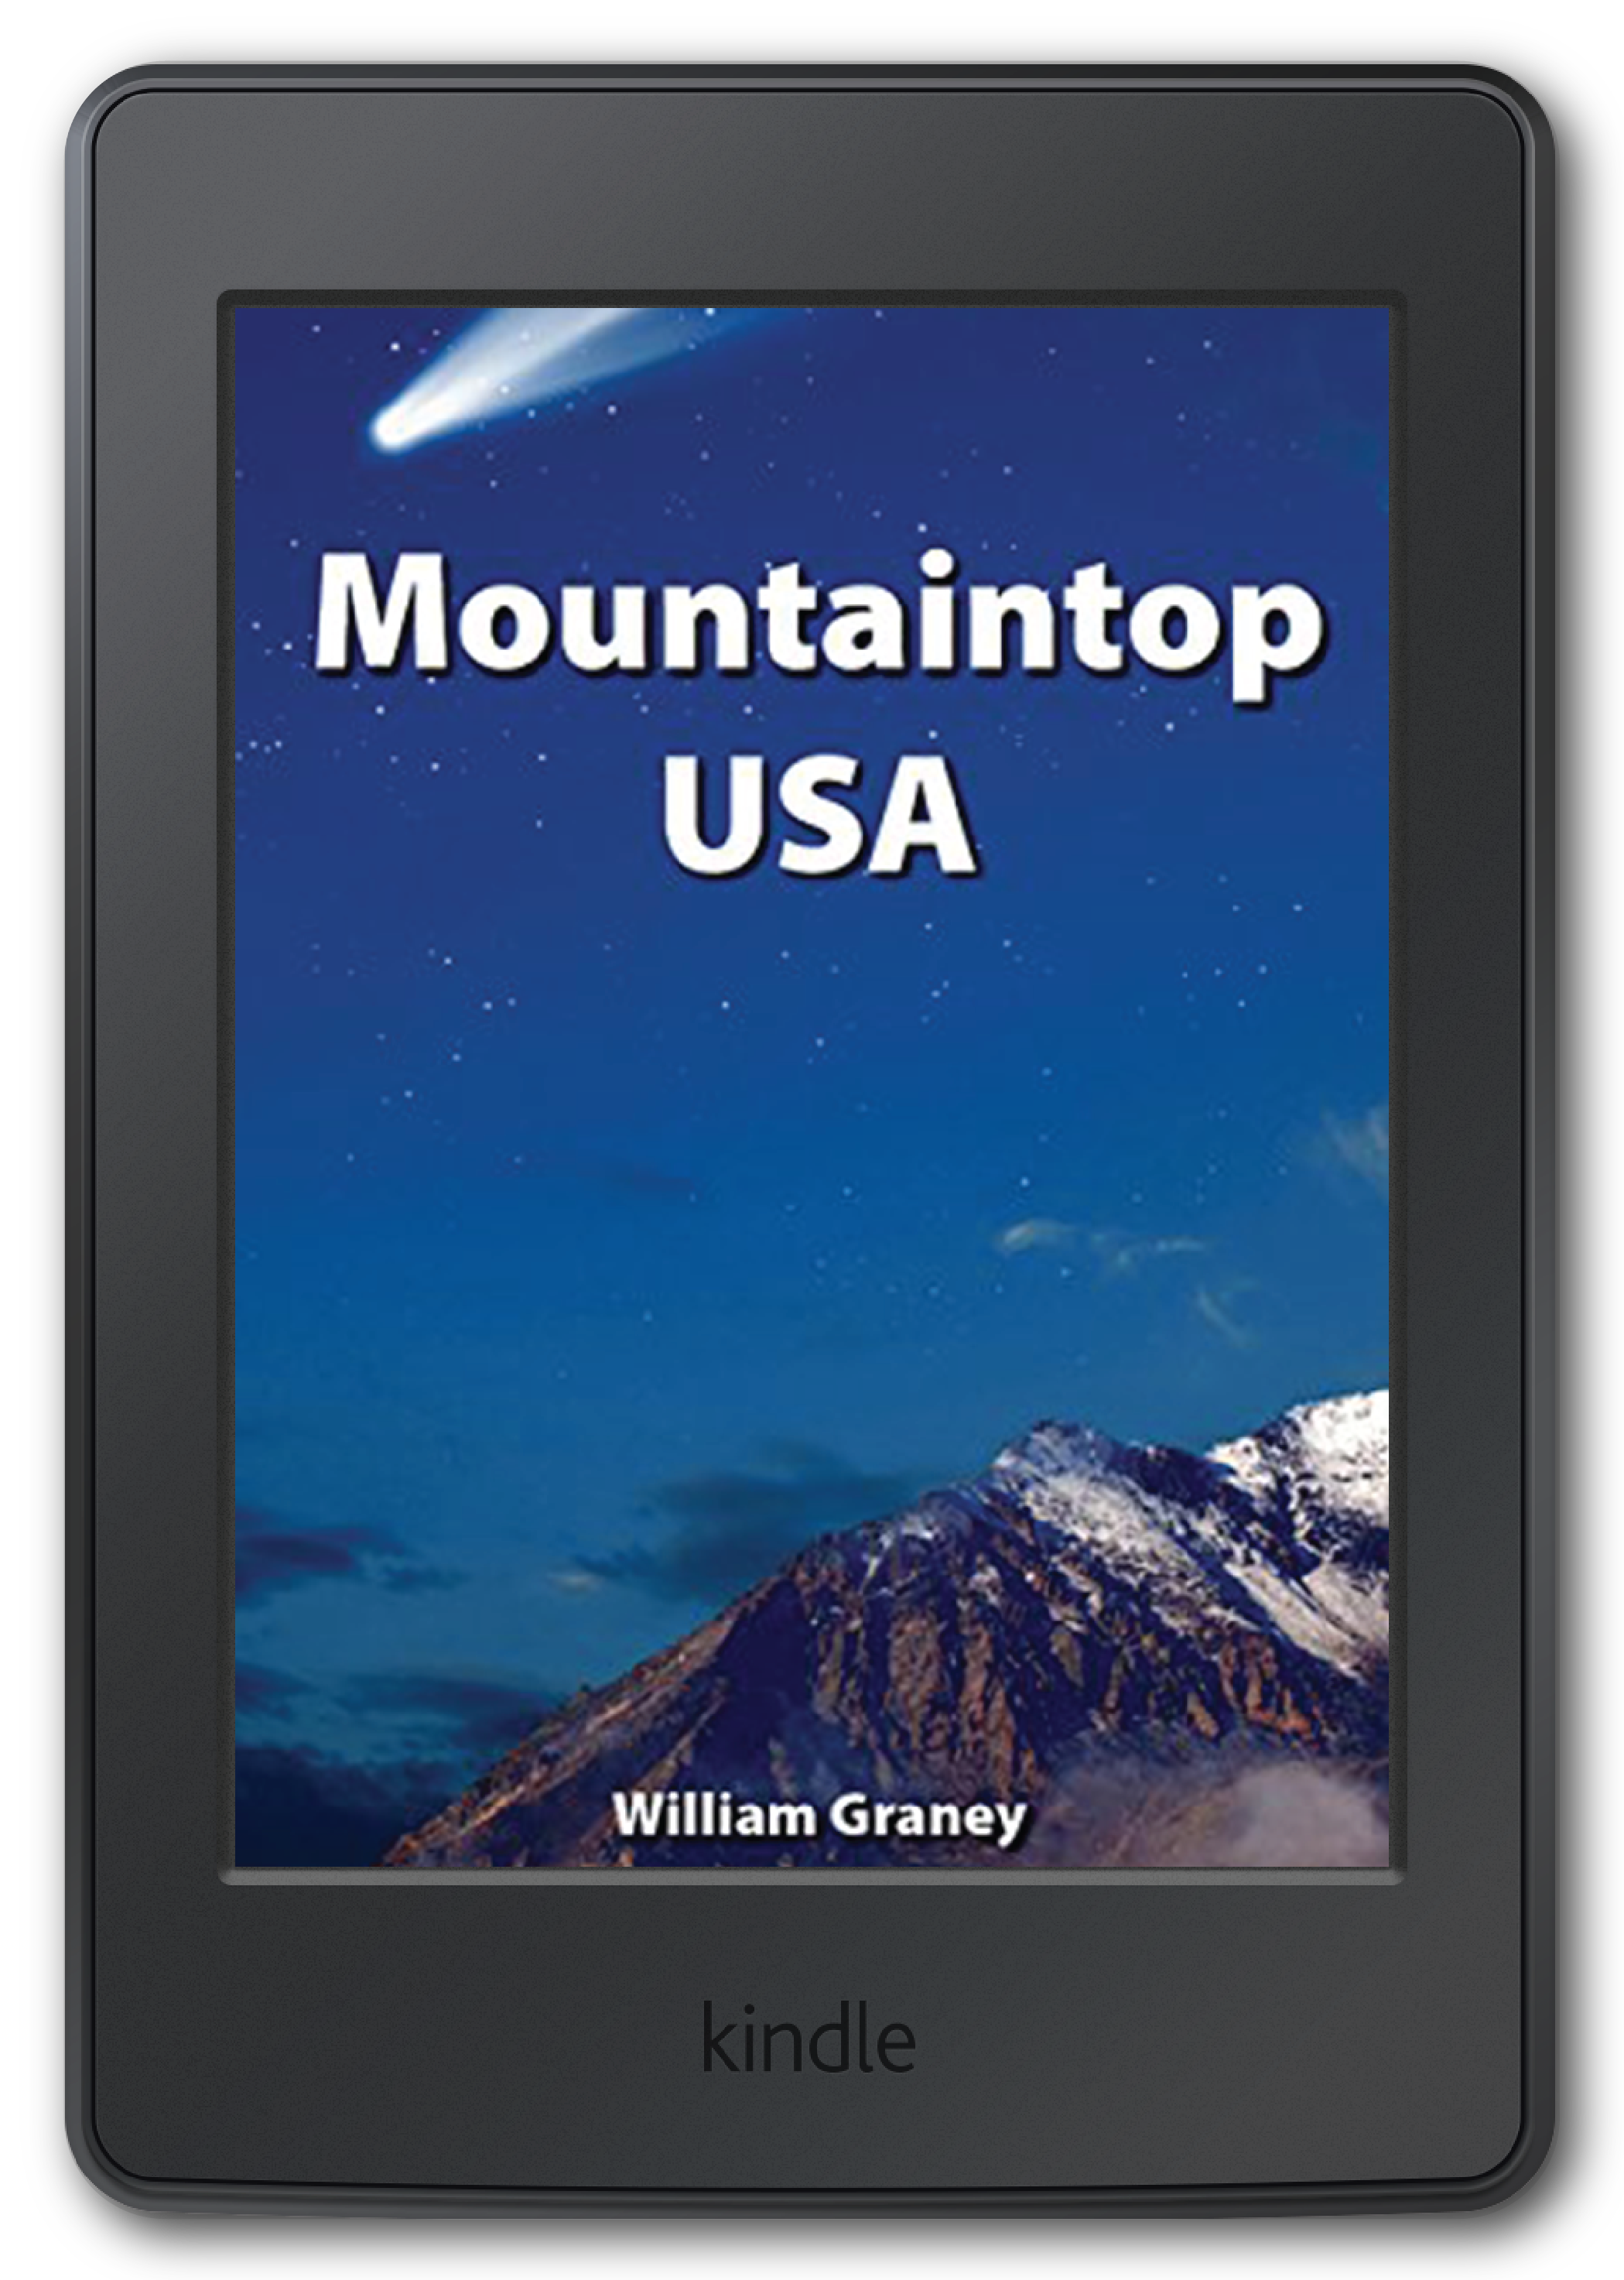 Mountaintop USA by William Graney